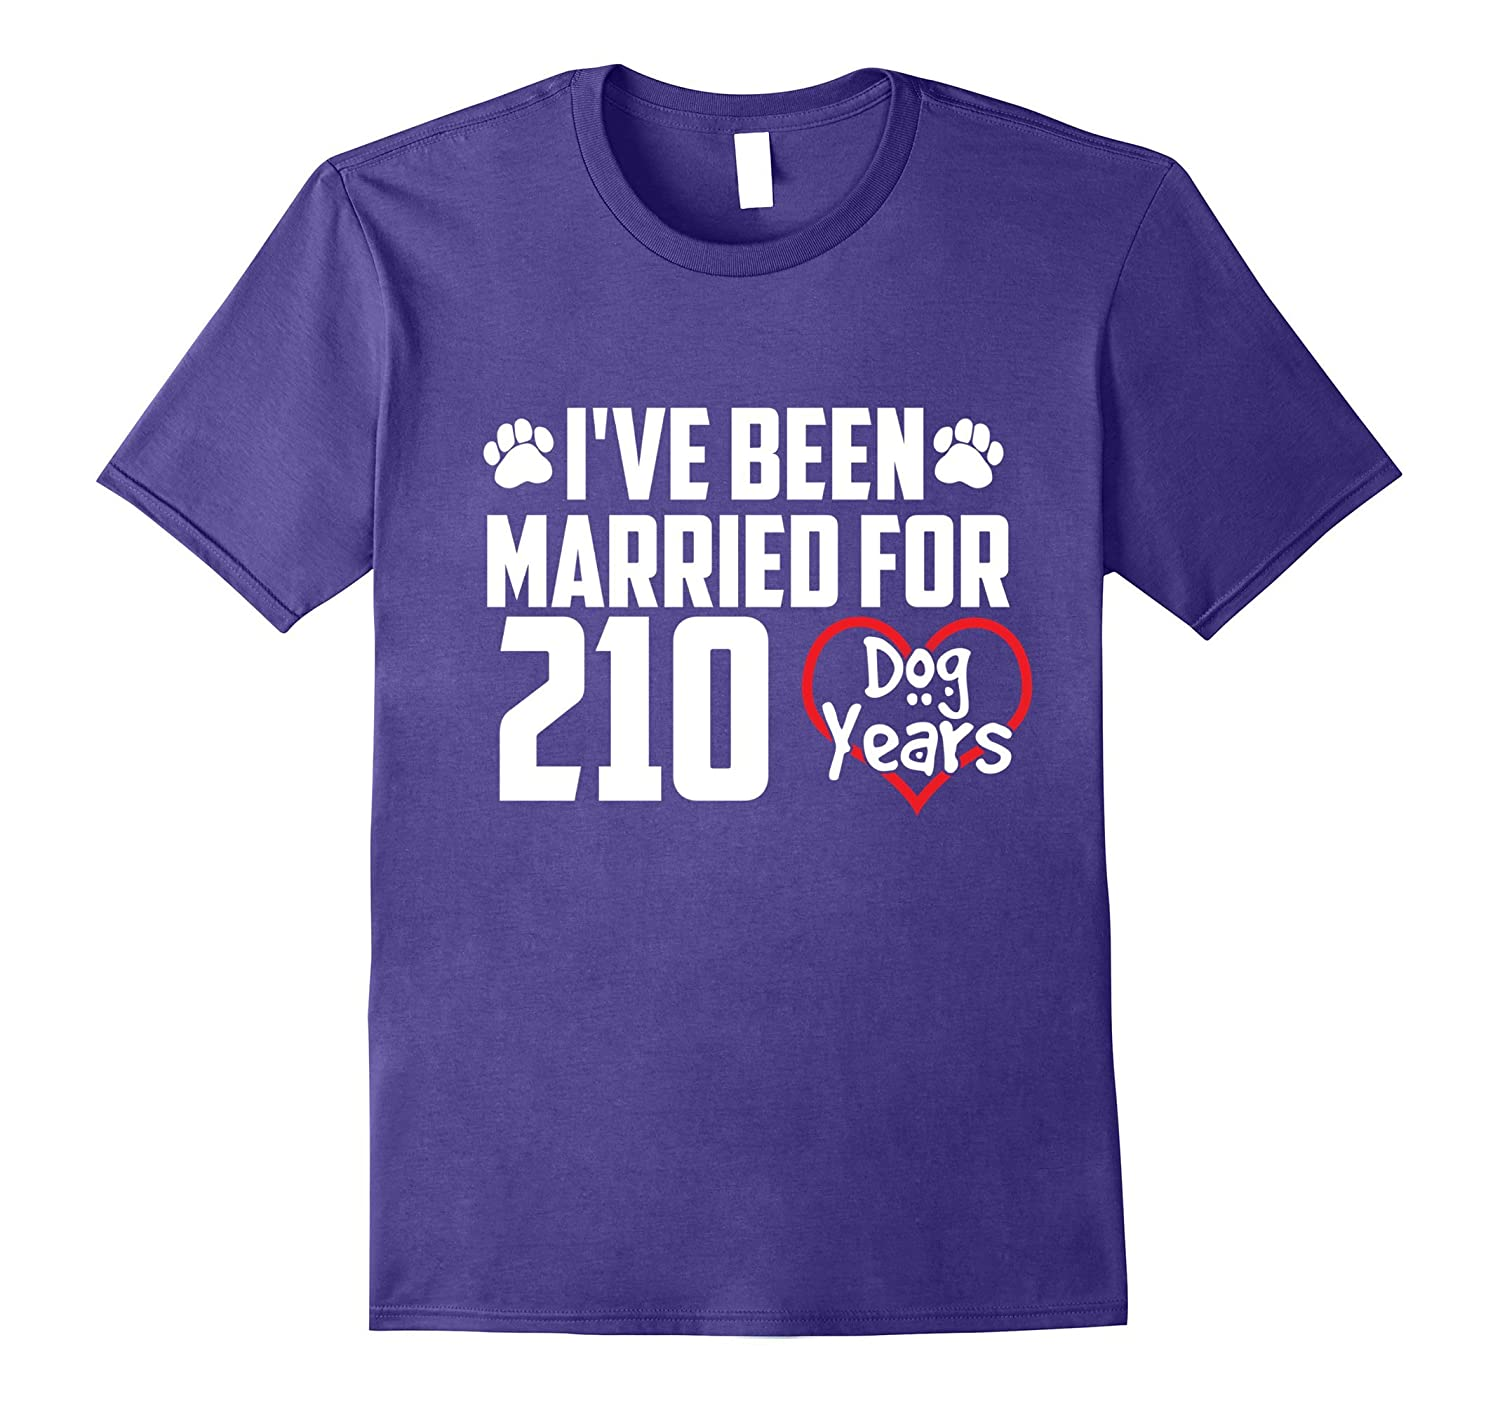 30th Wedding Anniversary Gift For Dog lover. Couple Shirt.-4LVS